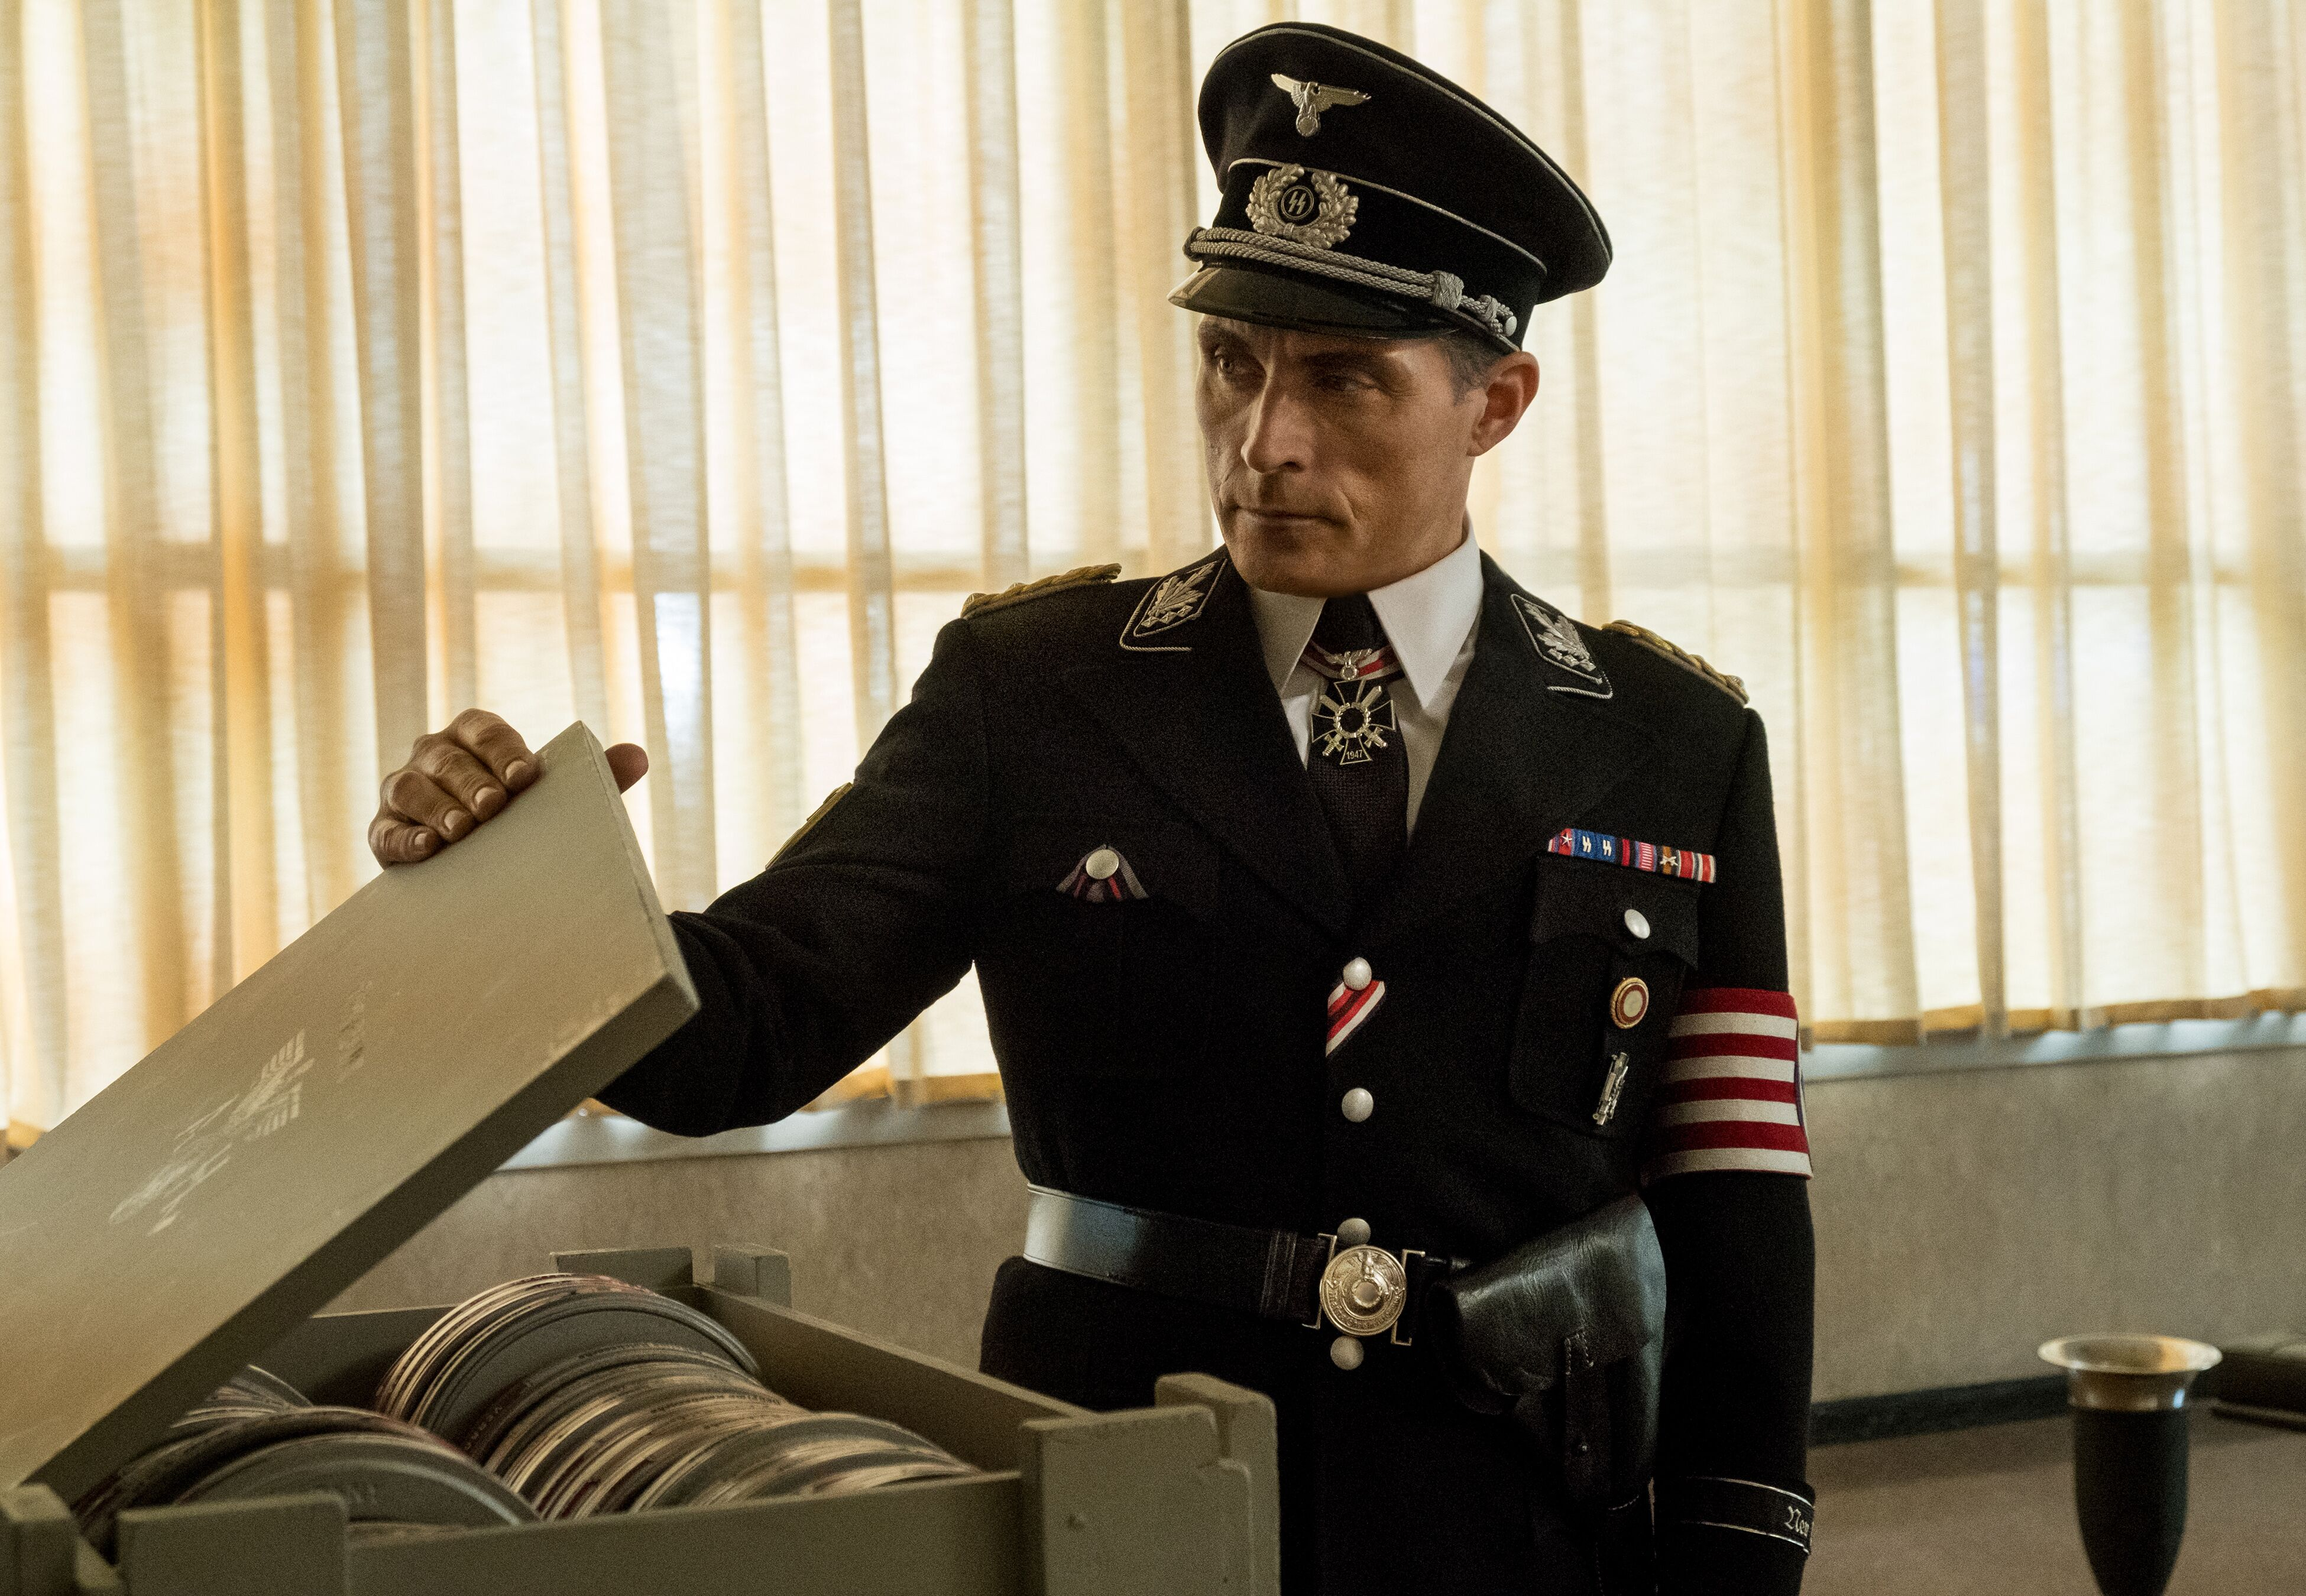 The Man in the High Castle ending after four seasons